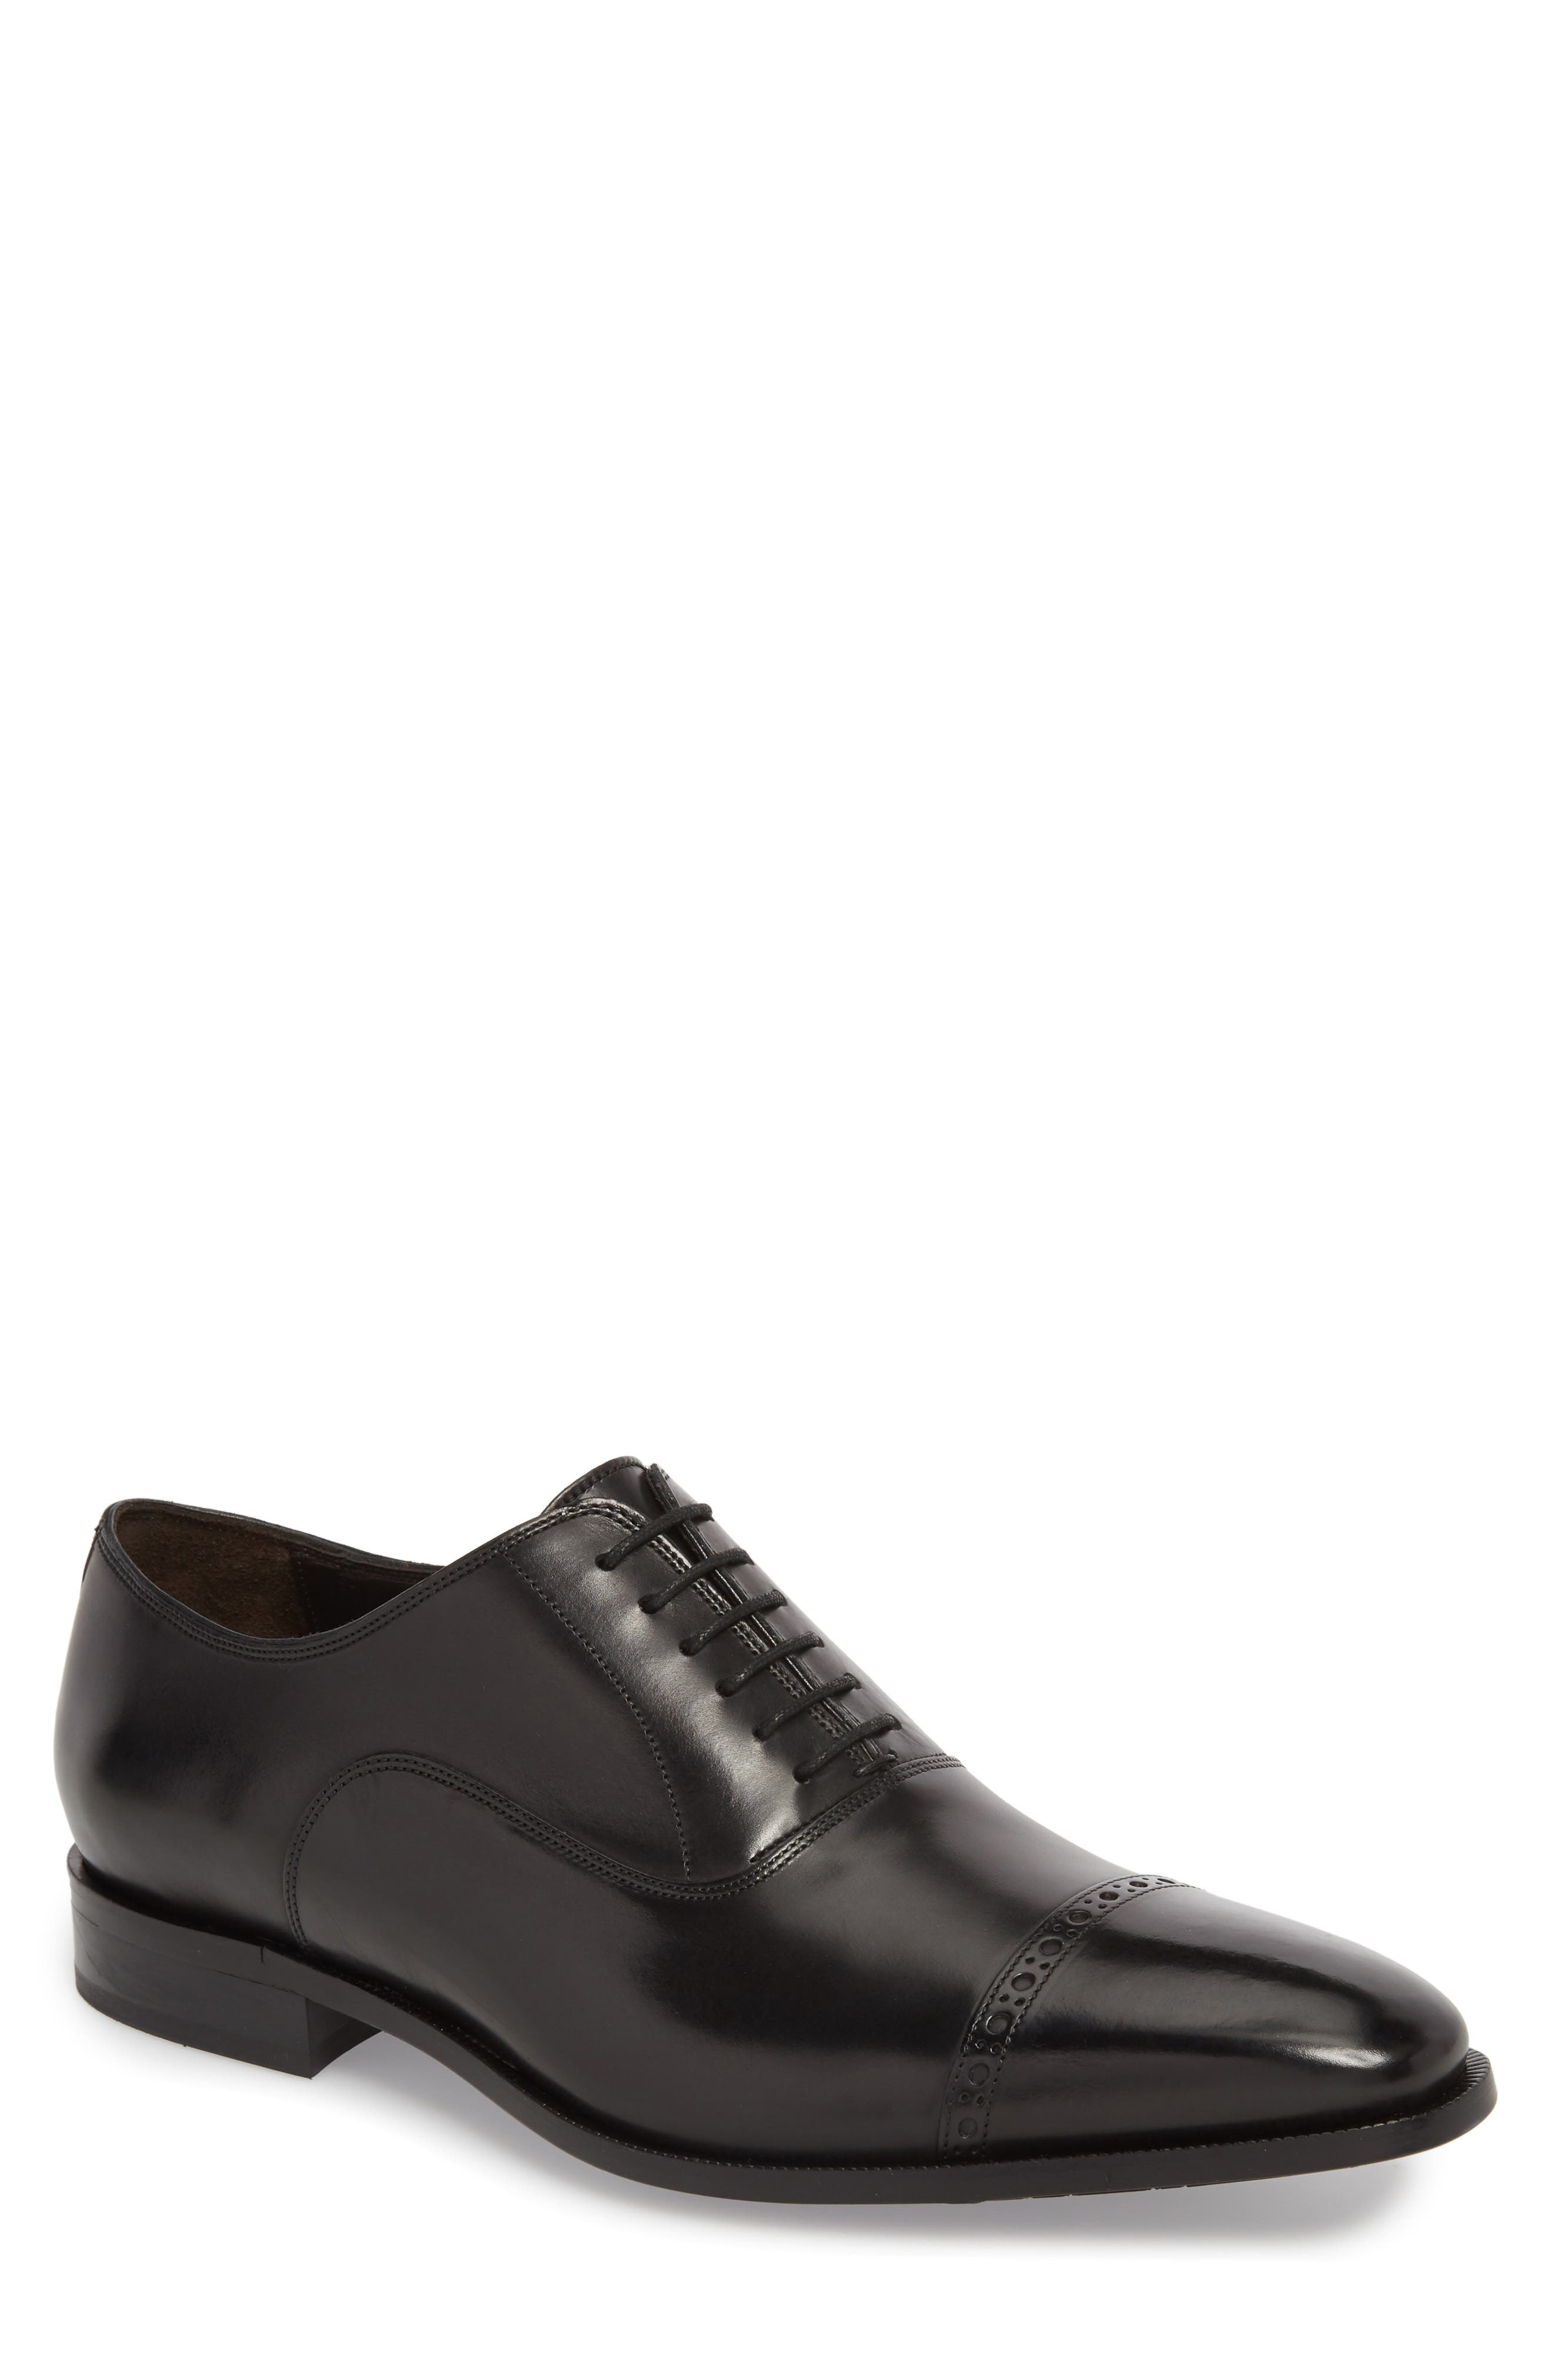 To Boot New York Harding Cap Toe Oxford, Black